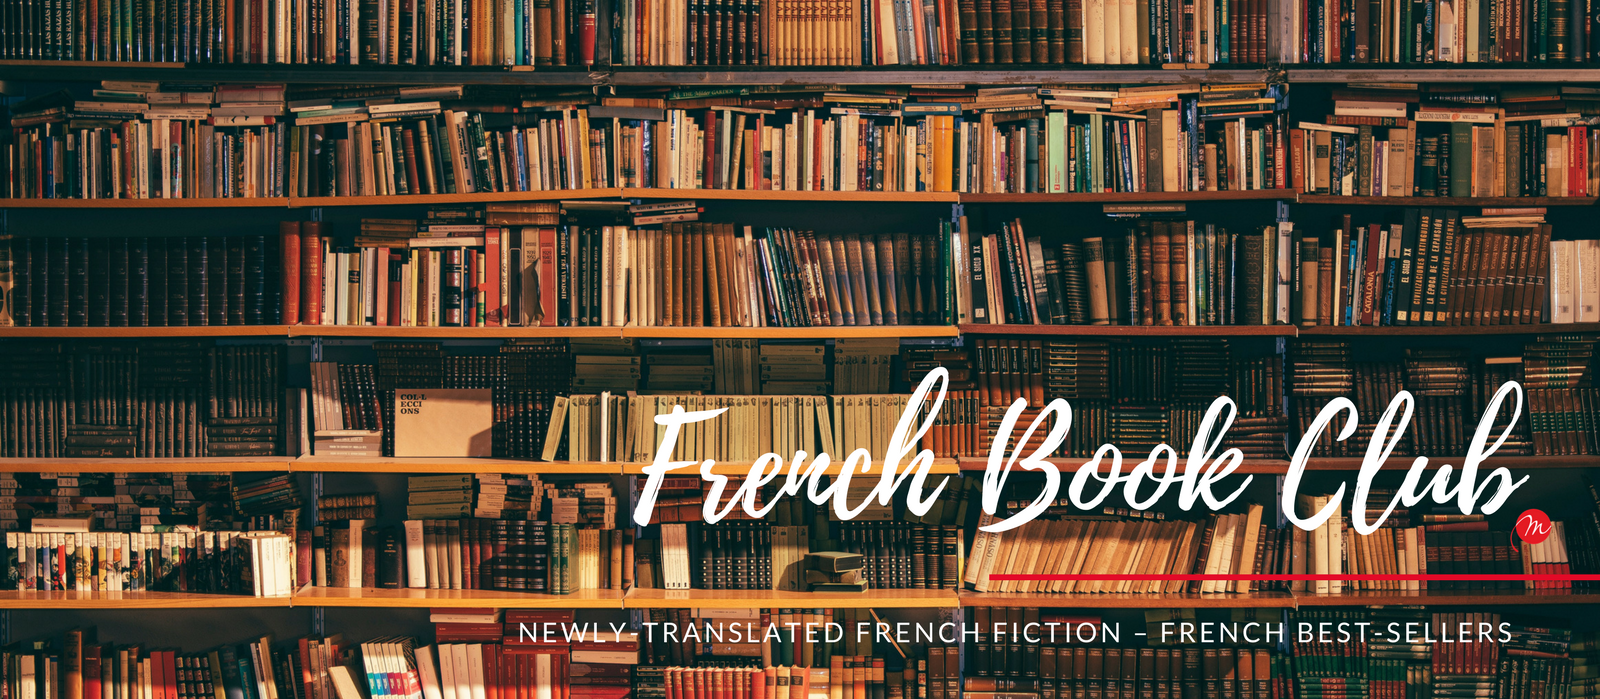 MyFrenchLife™ - MyFrenchLife.org – French book club – recently translated fiction – French best-sellers